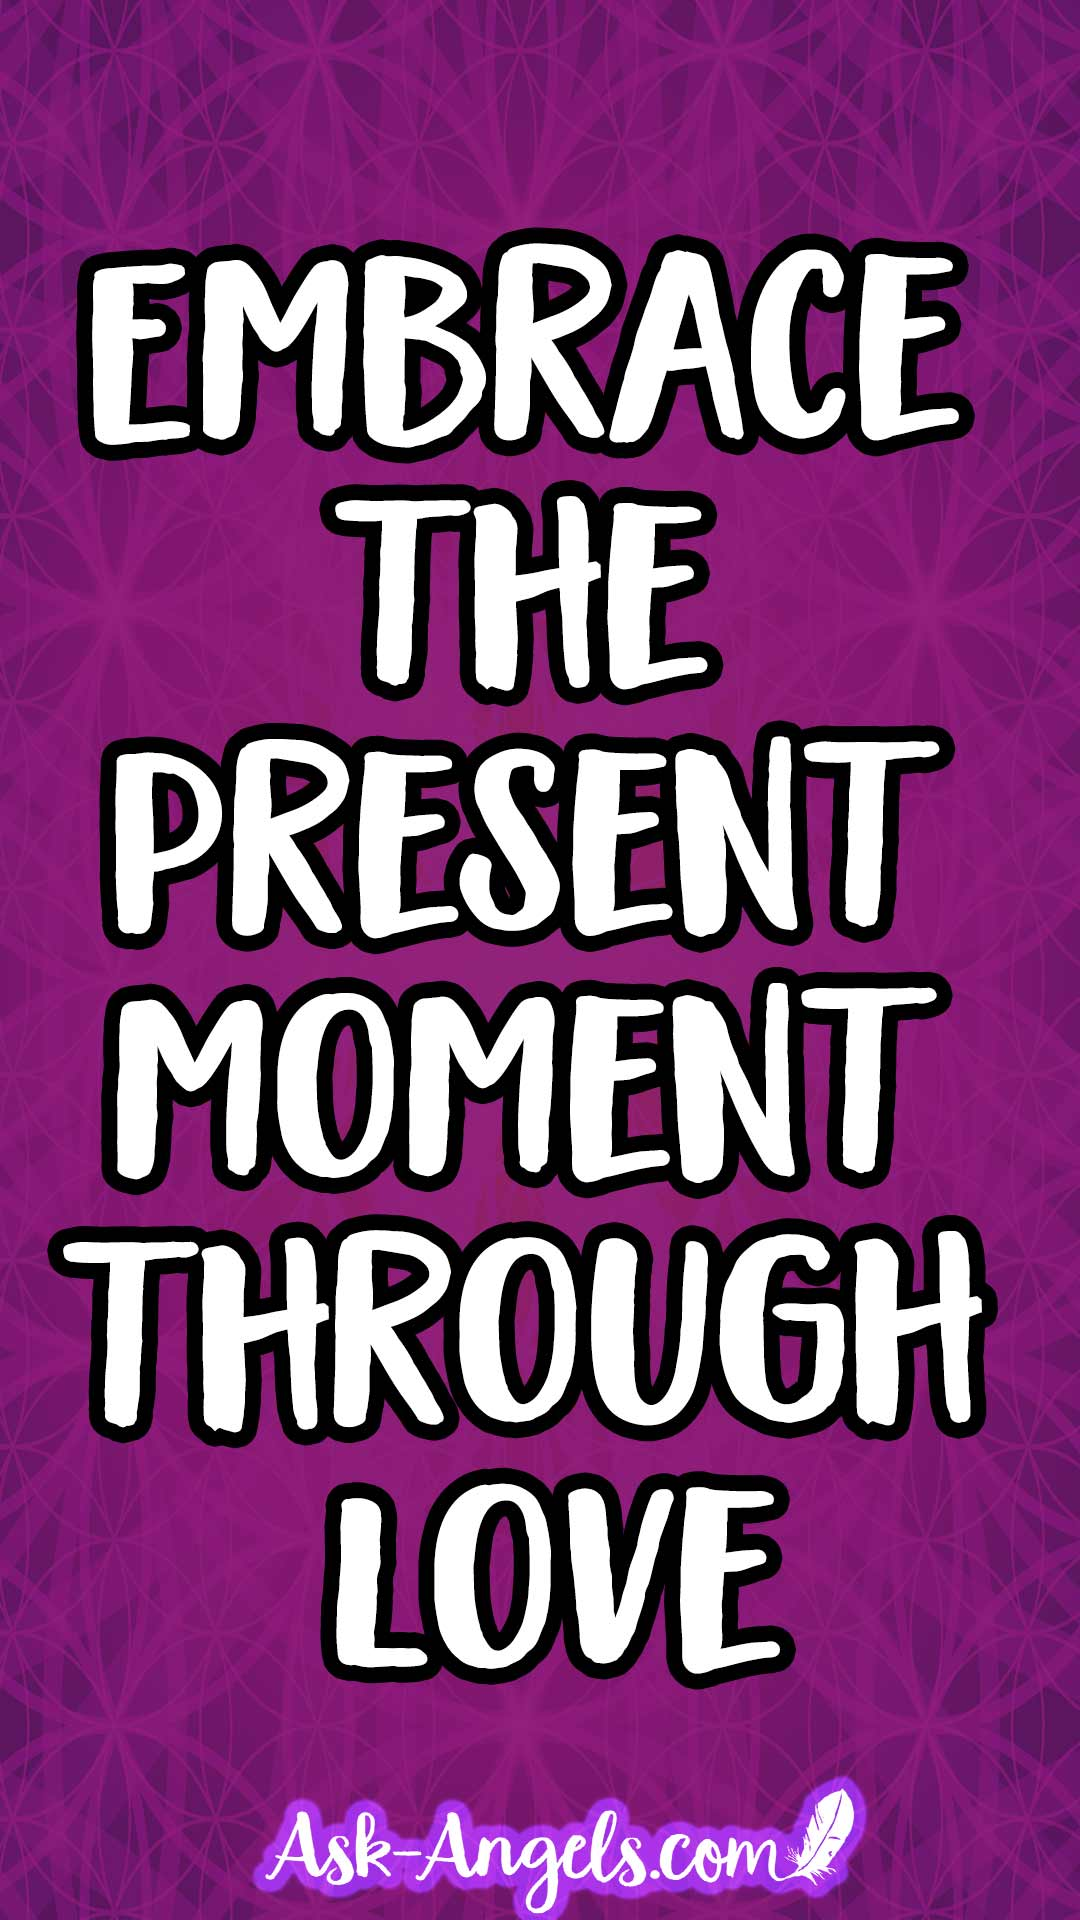 Embrace the Present Moment Through Love